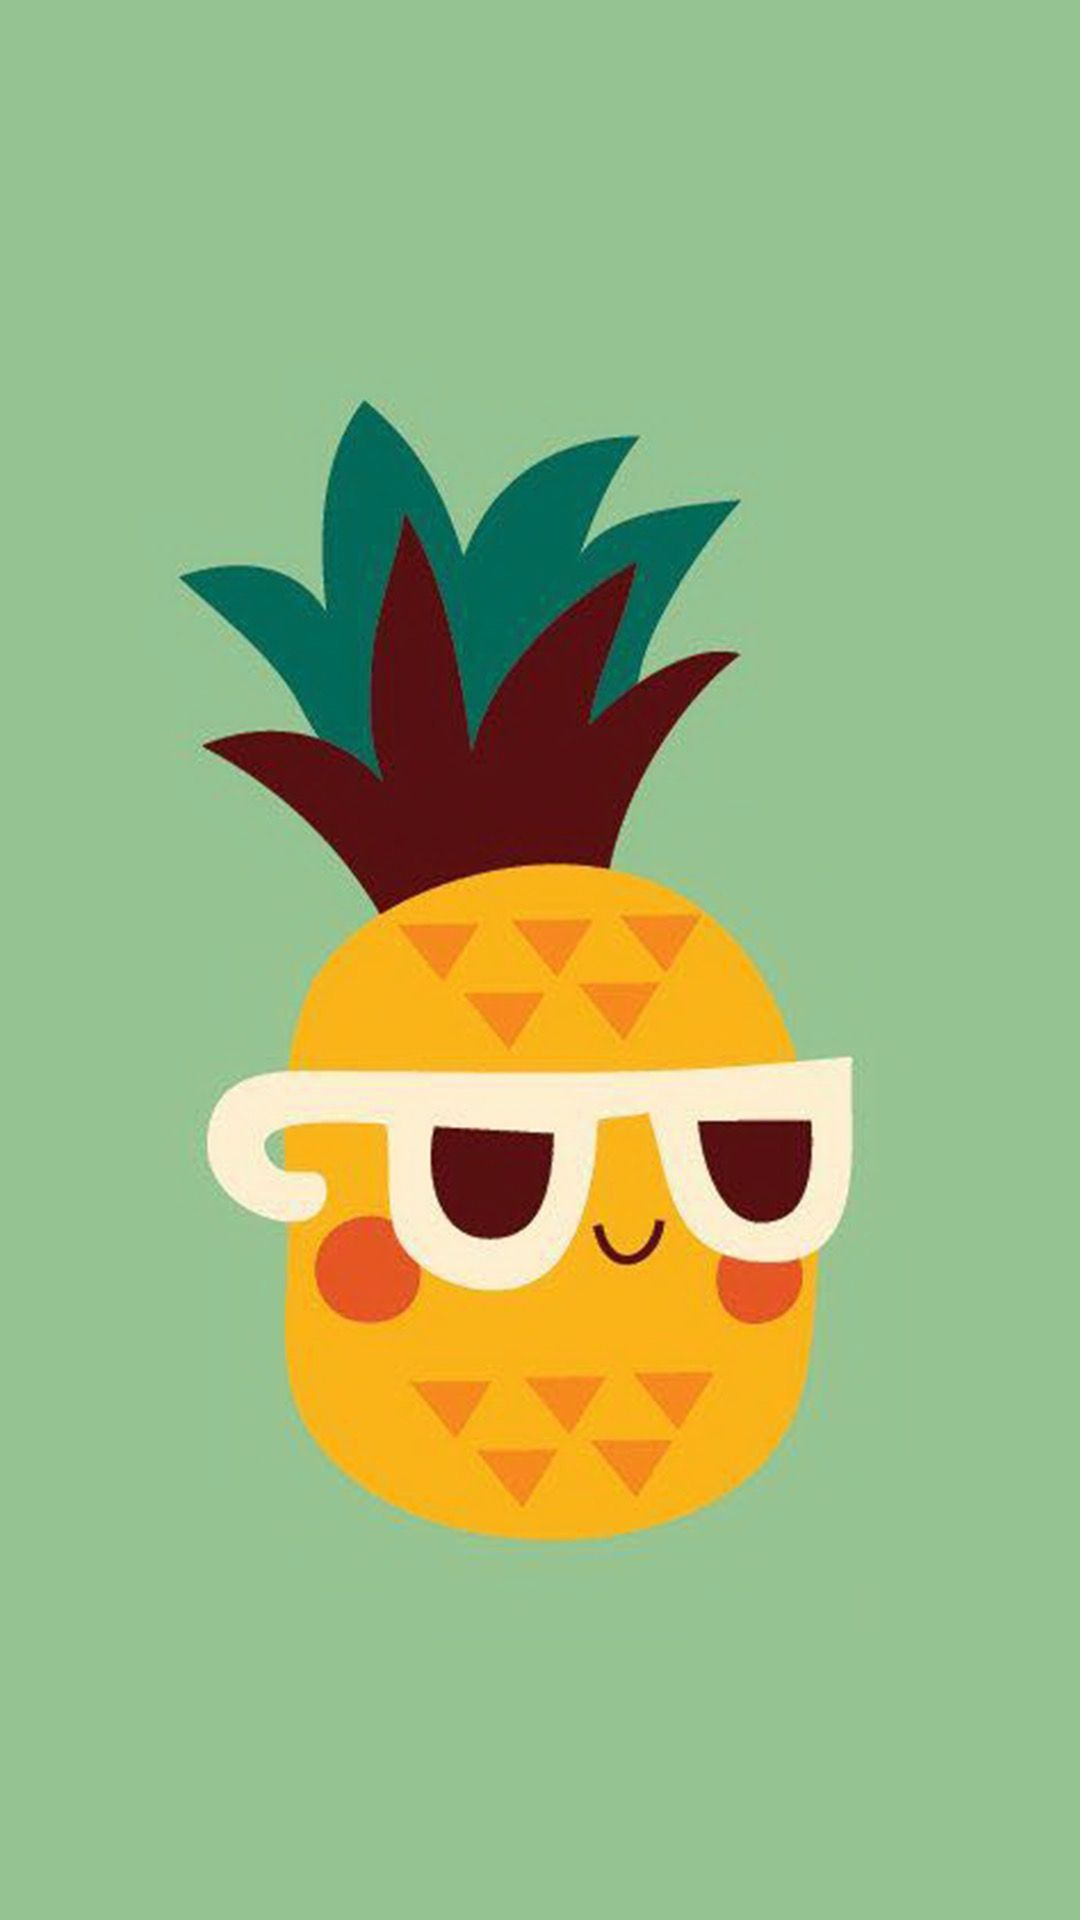 1080x1920 Pin by Nora S on pineapple in 2019 | Pineapple wallpaper ...